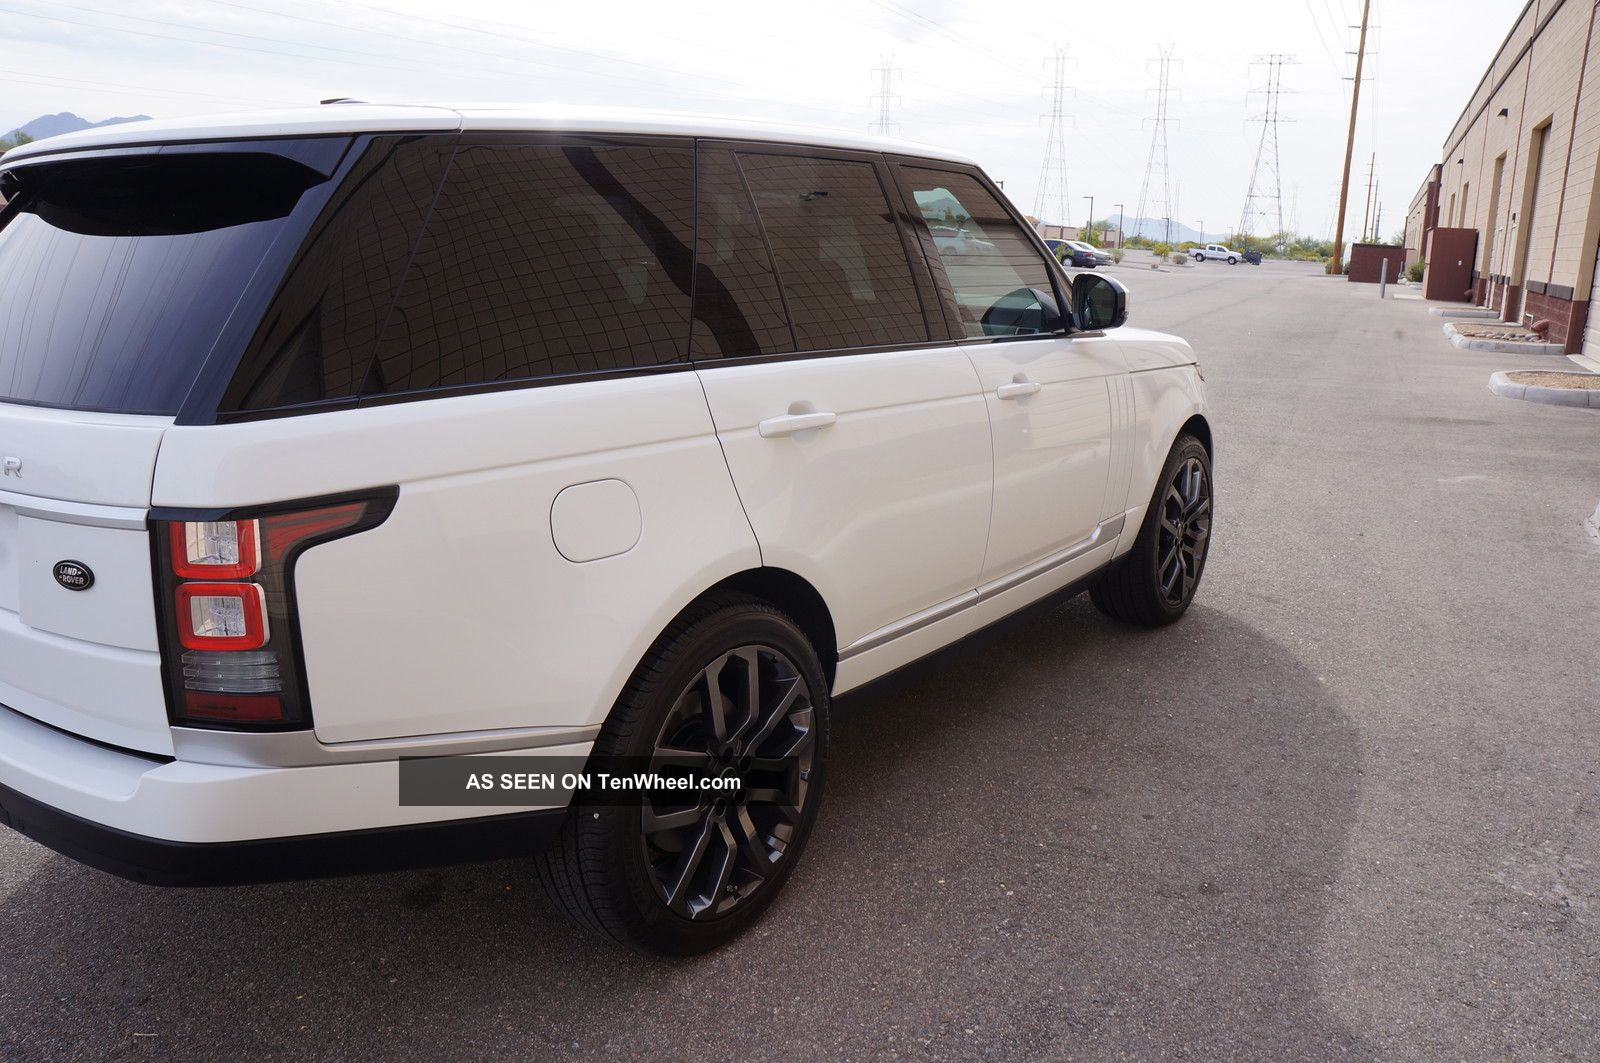 2013 Range Rover Hse White Over Black 22 Quot Meridian